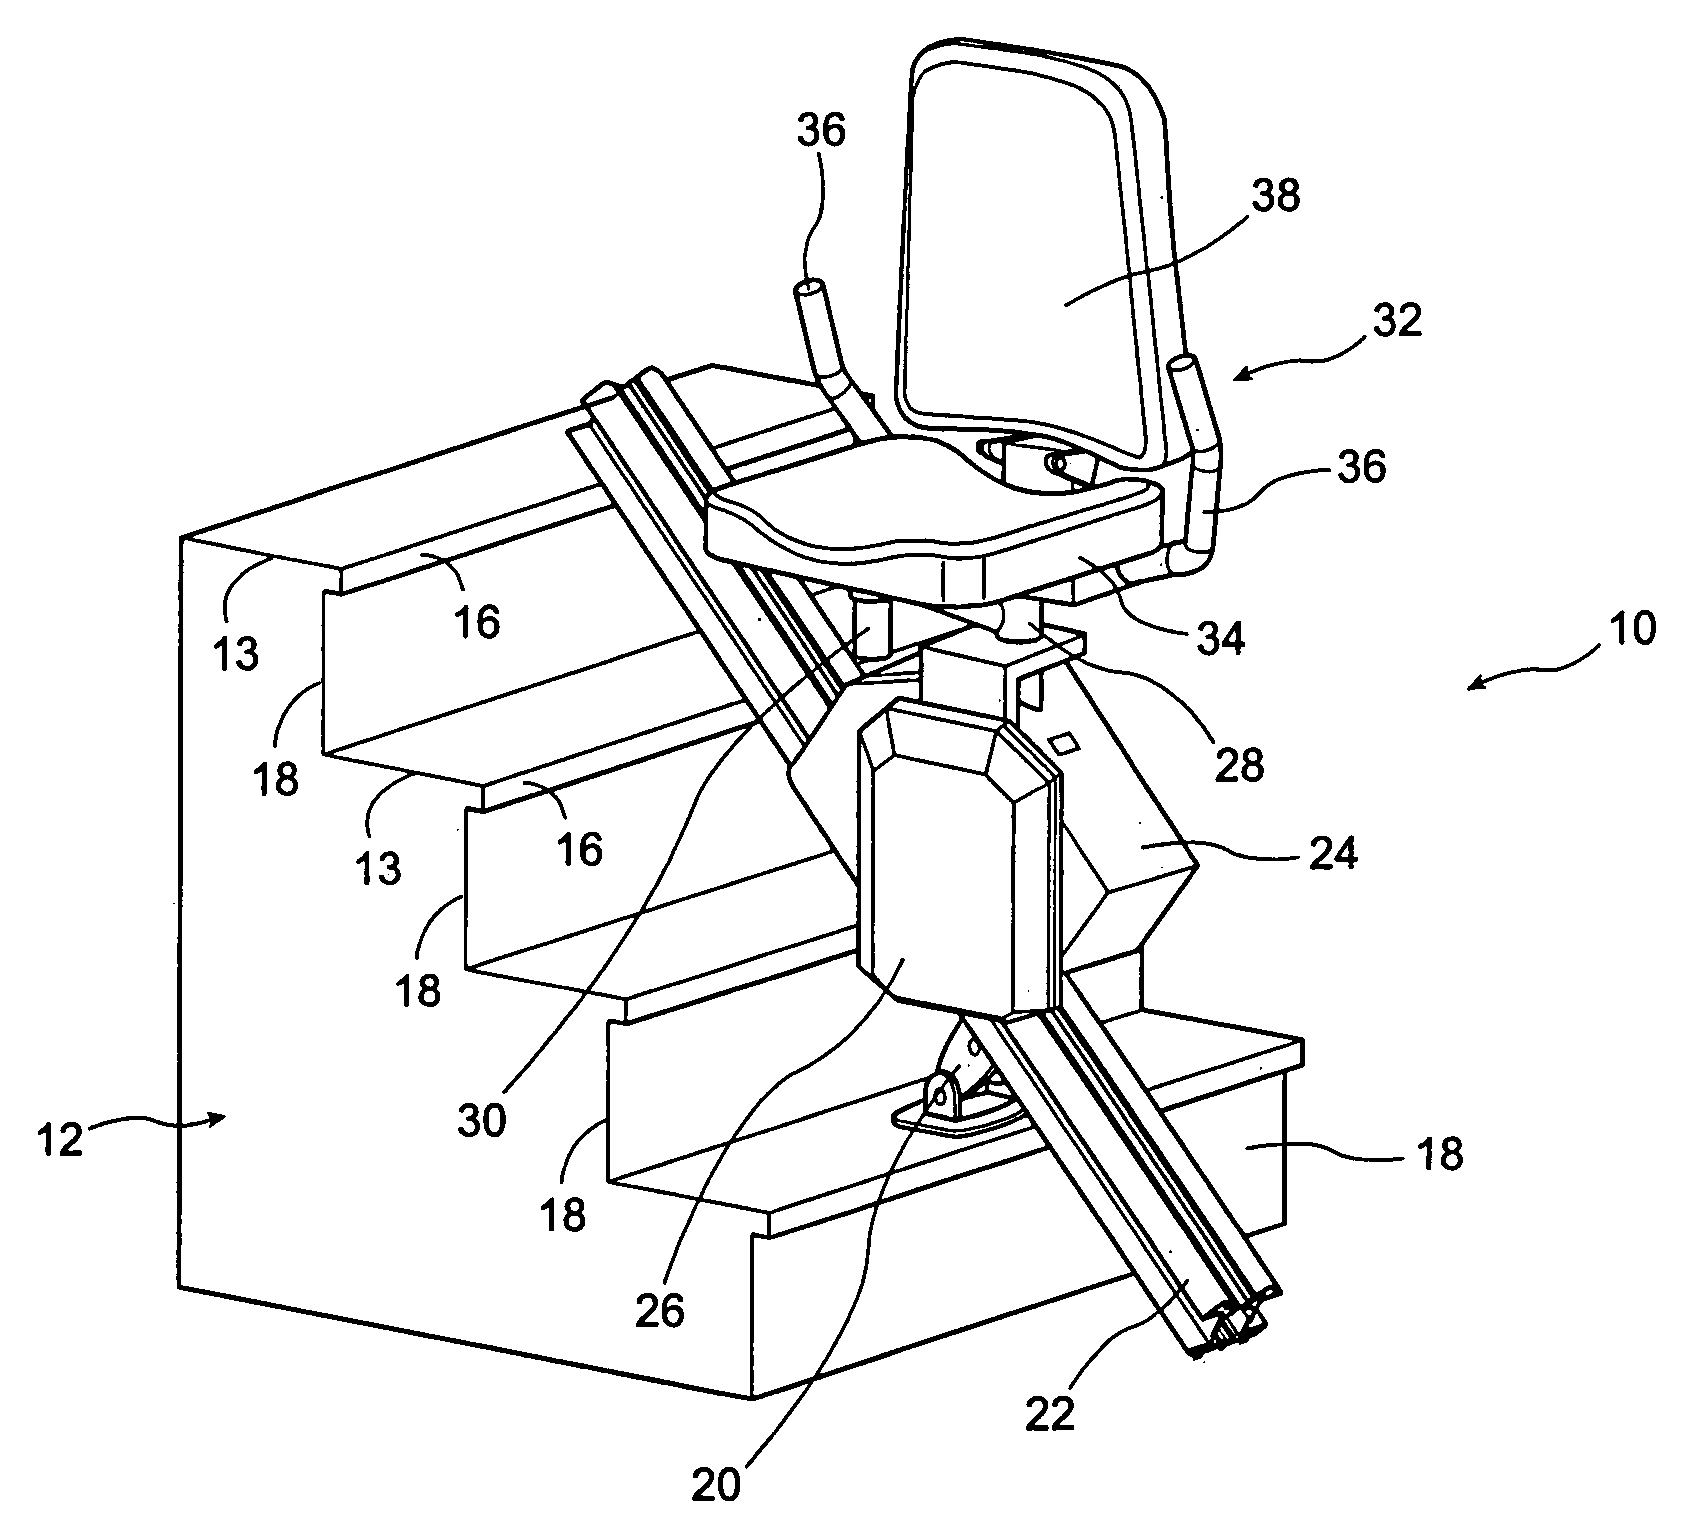 patent us7225899 - stair lift device